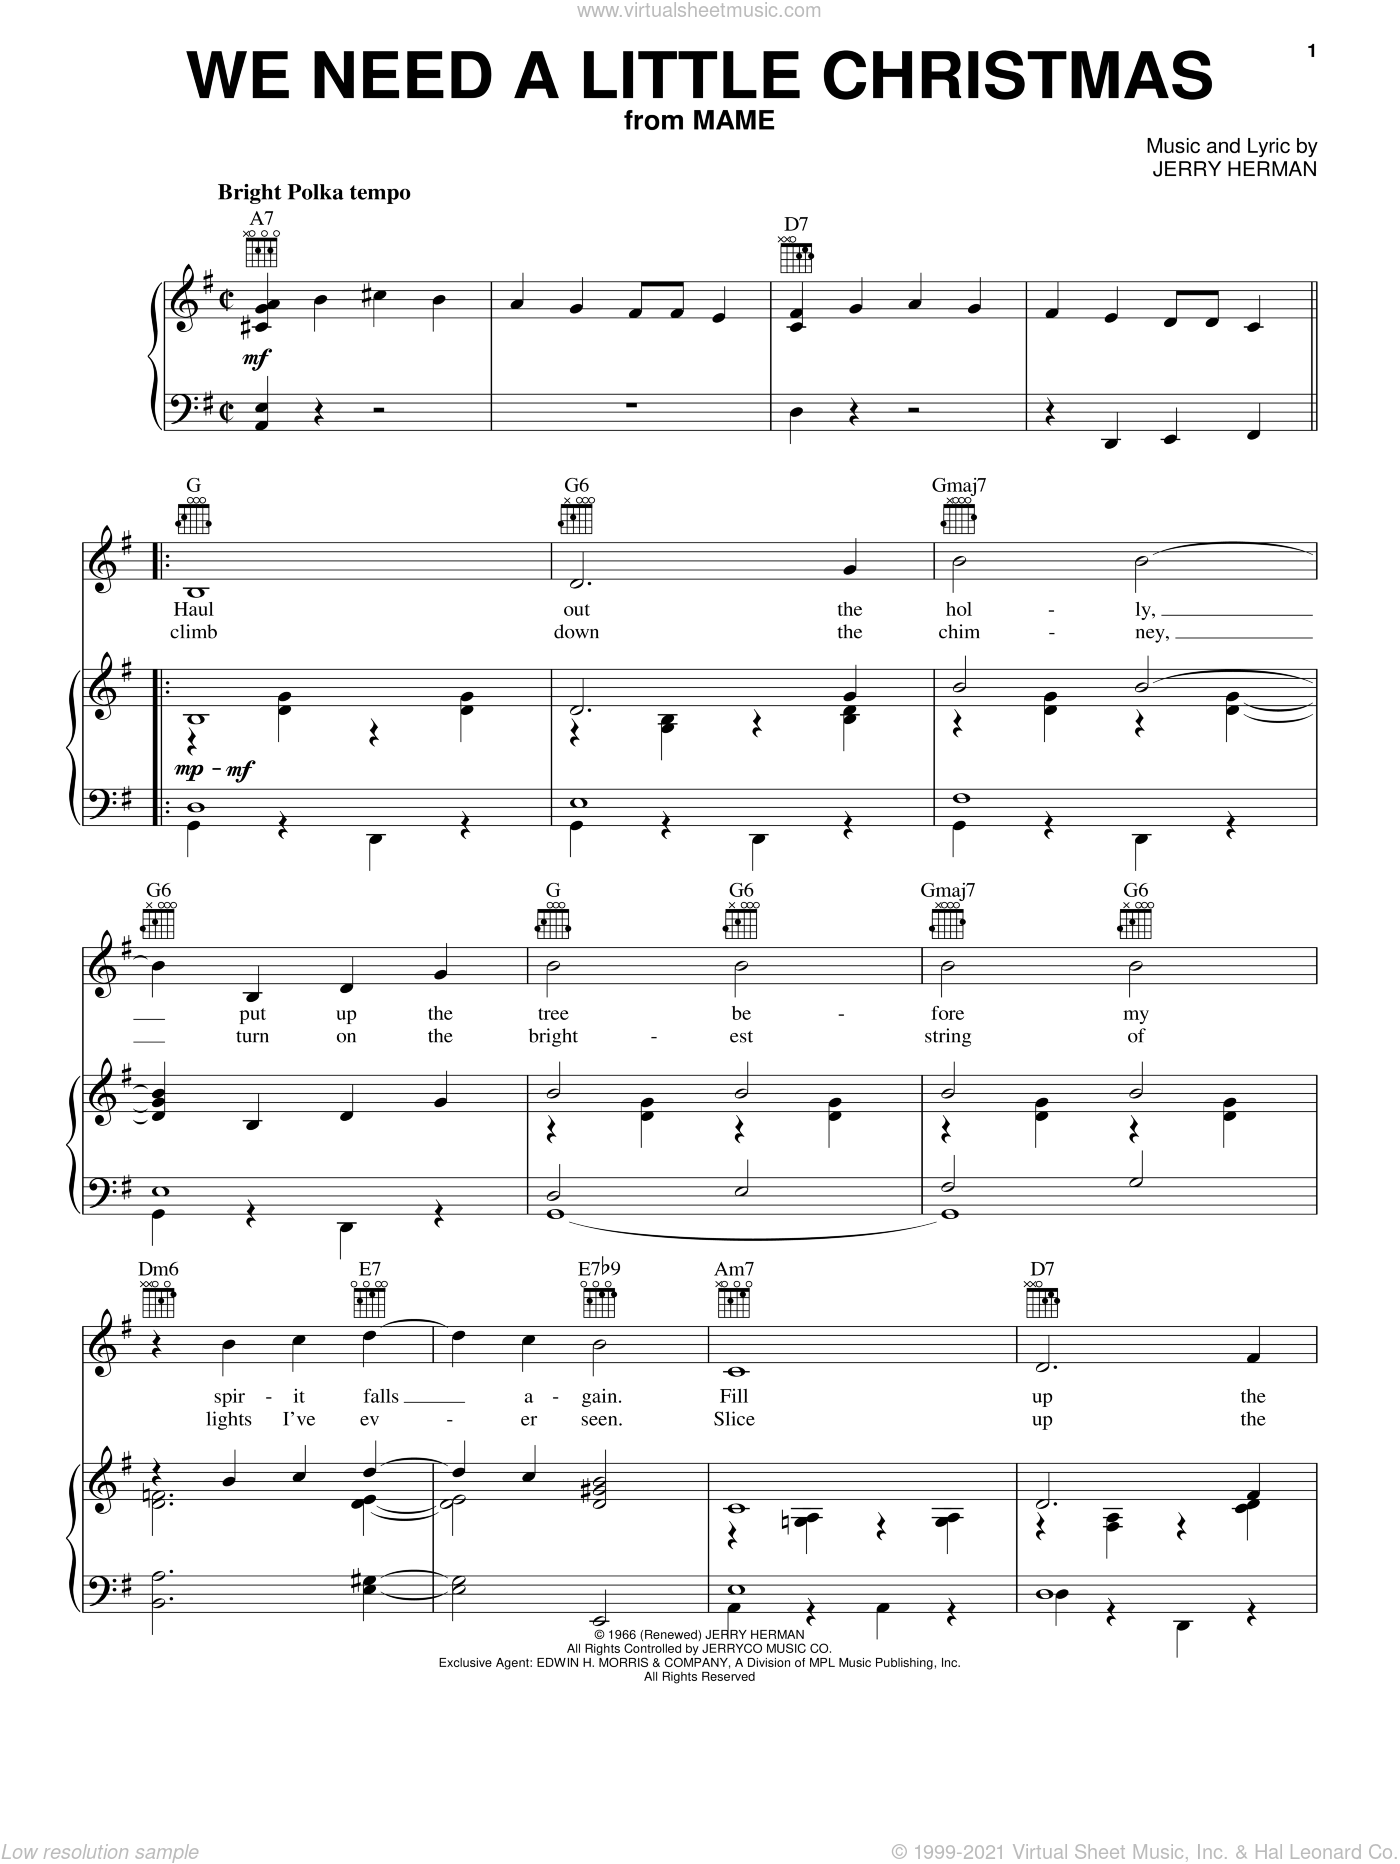 We Need A Little Christmas sheet music for voice, piano or guitar by Angela Lansbury, Mame (Musical) and Jerry Herman, intermediate skill level